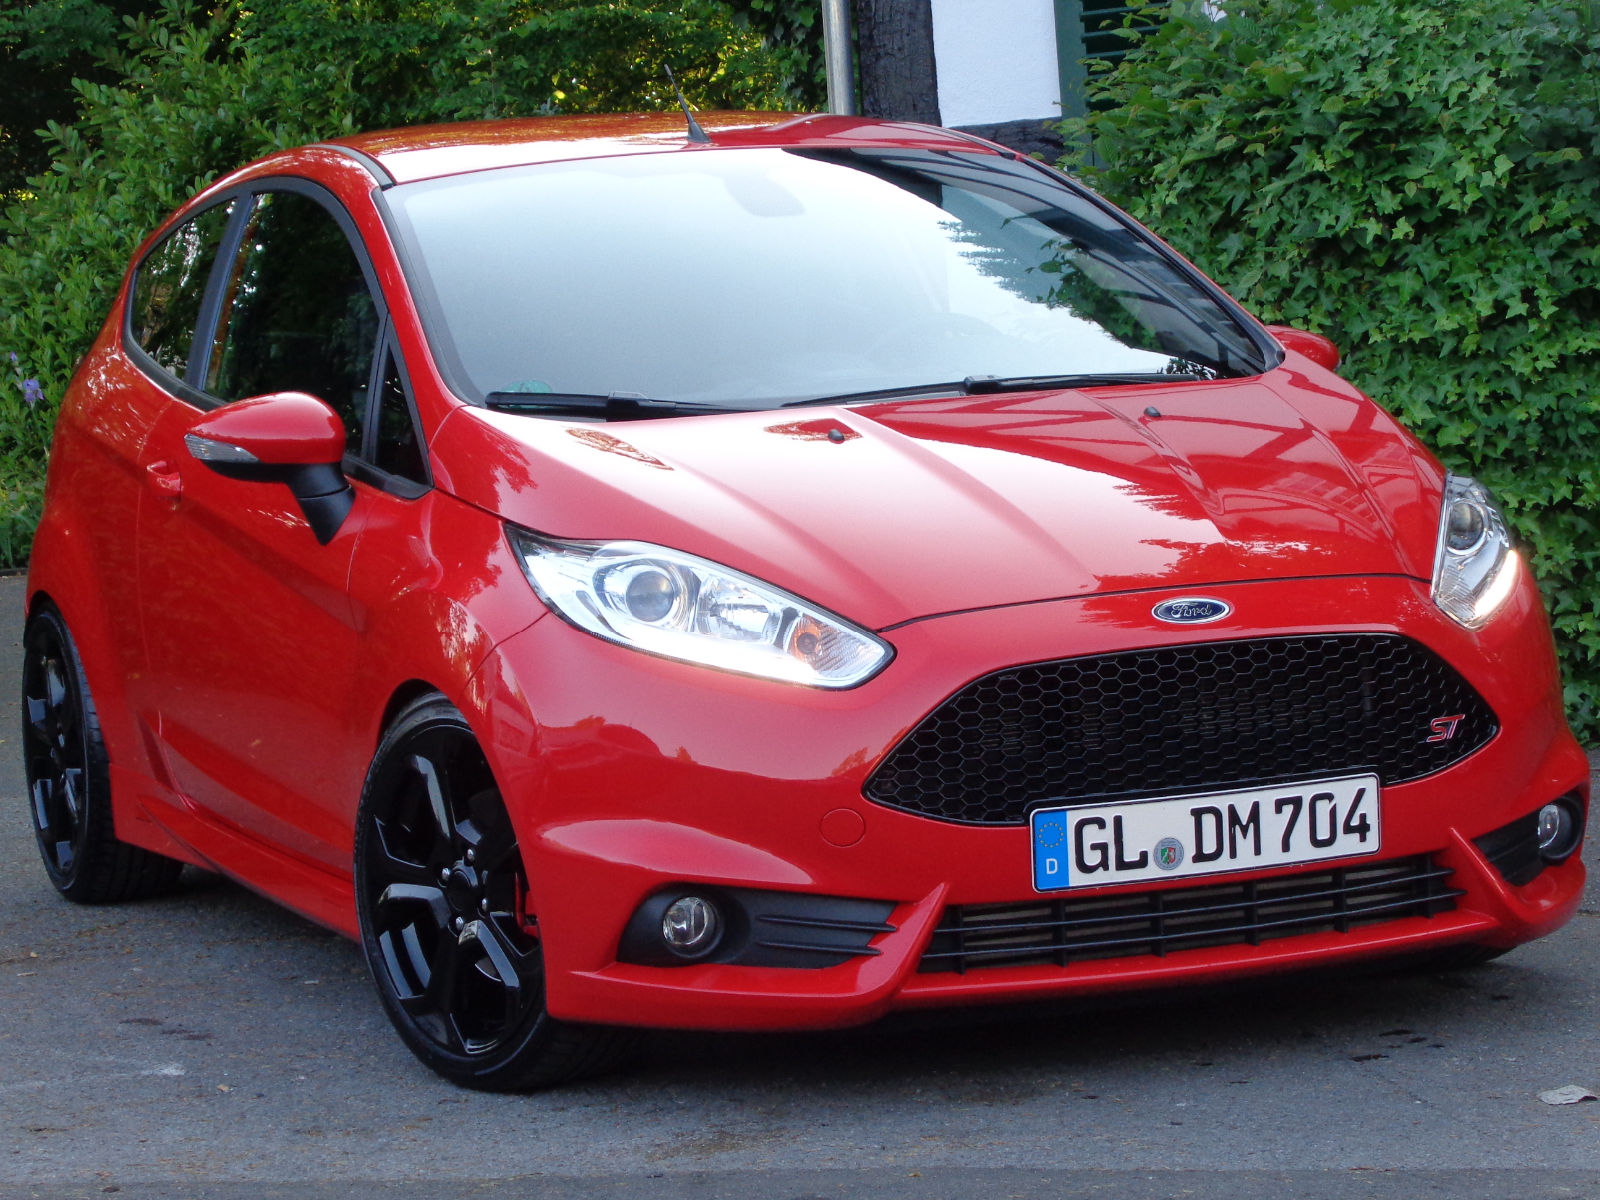 lhd FORD FIESTA (01/2014) - RED - lieu: